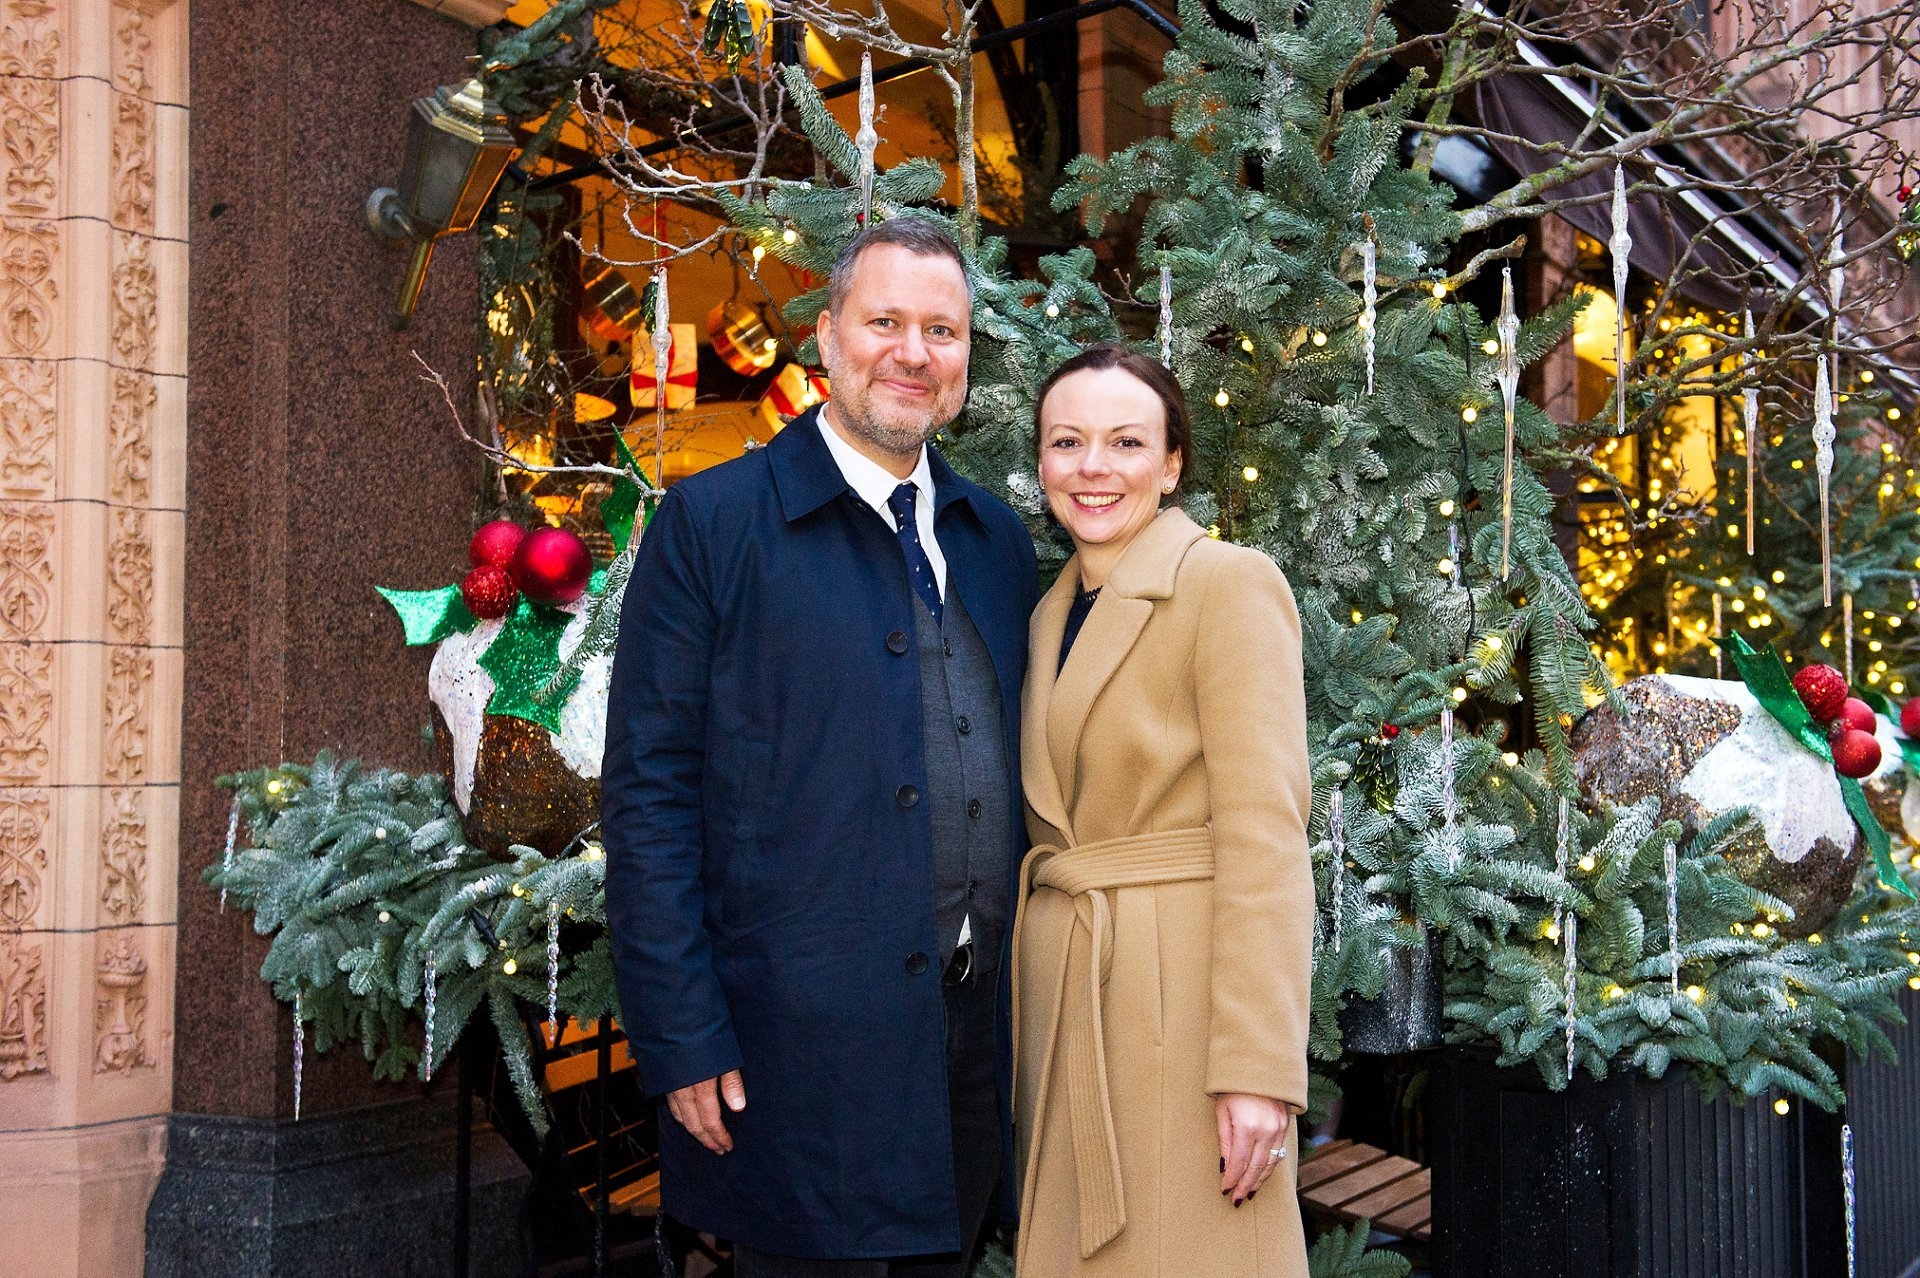 mayfair christmas wedding with couple photos taken in mount street